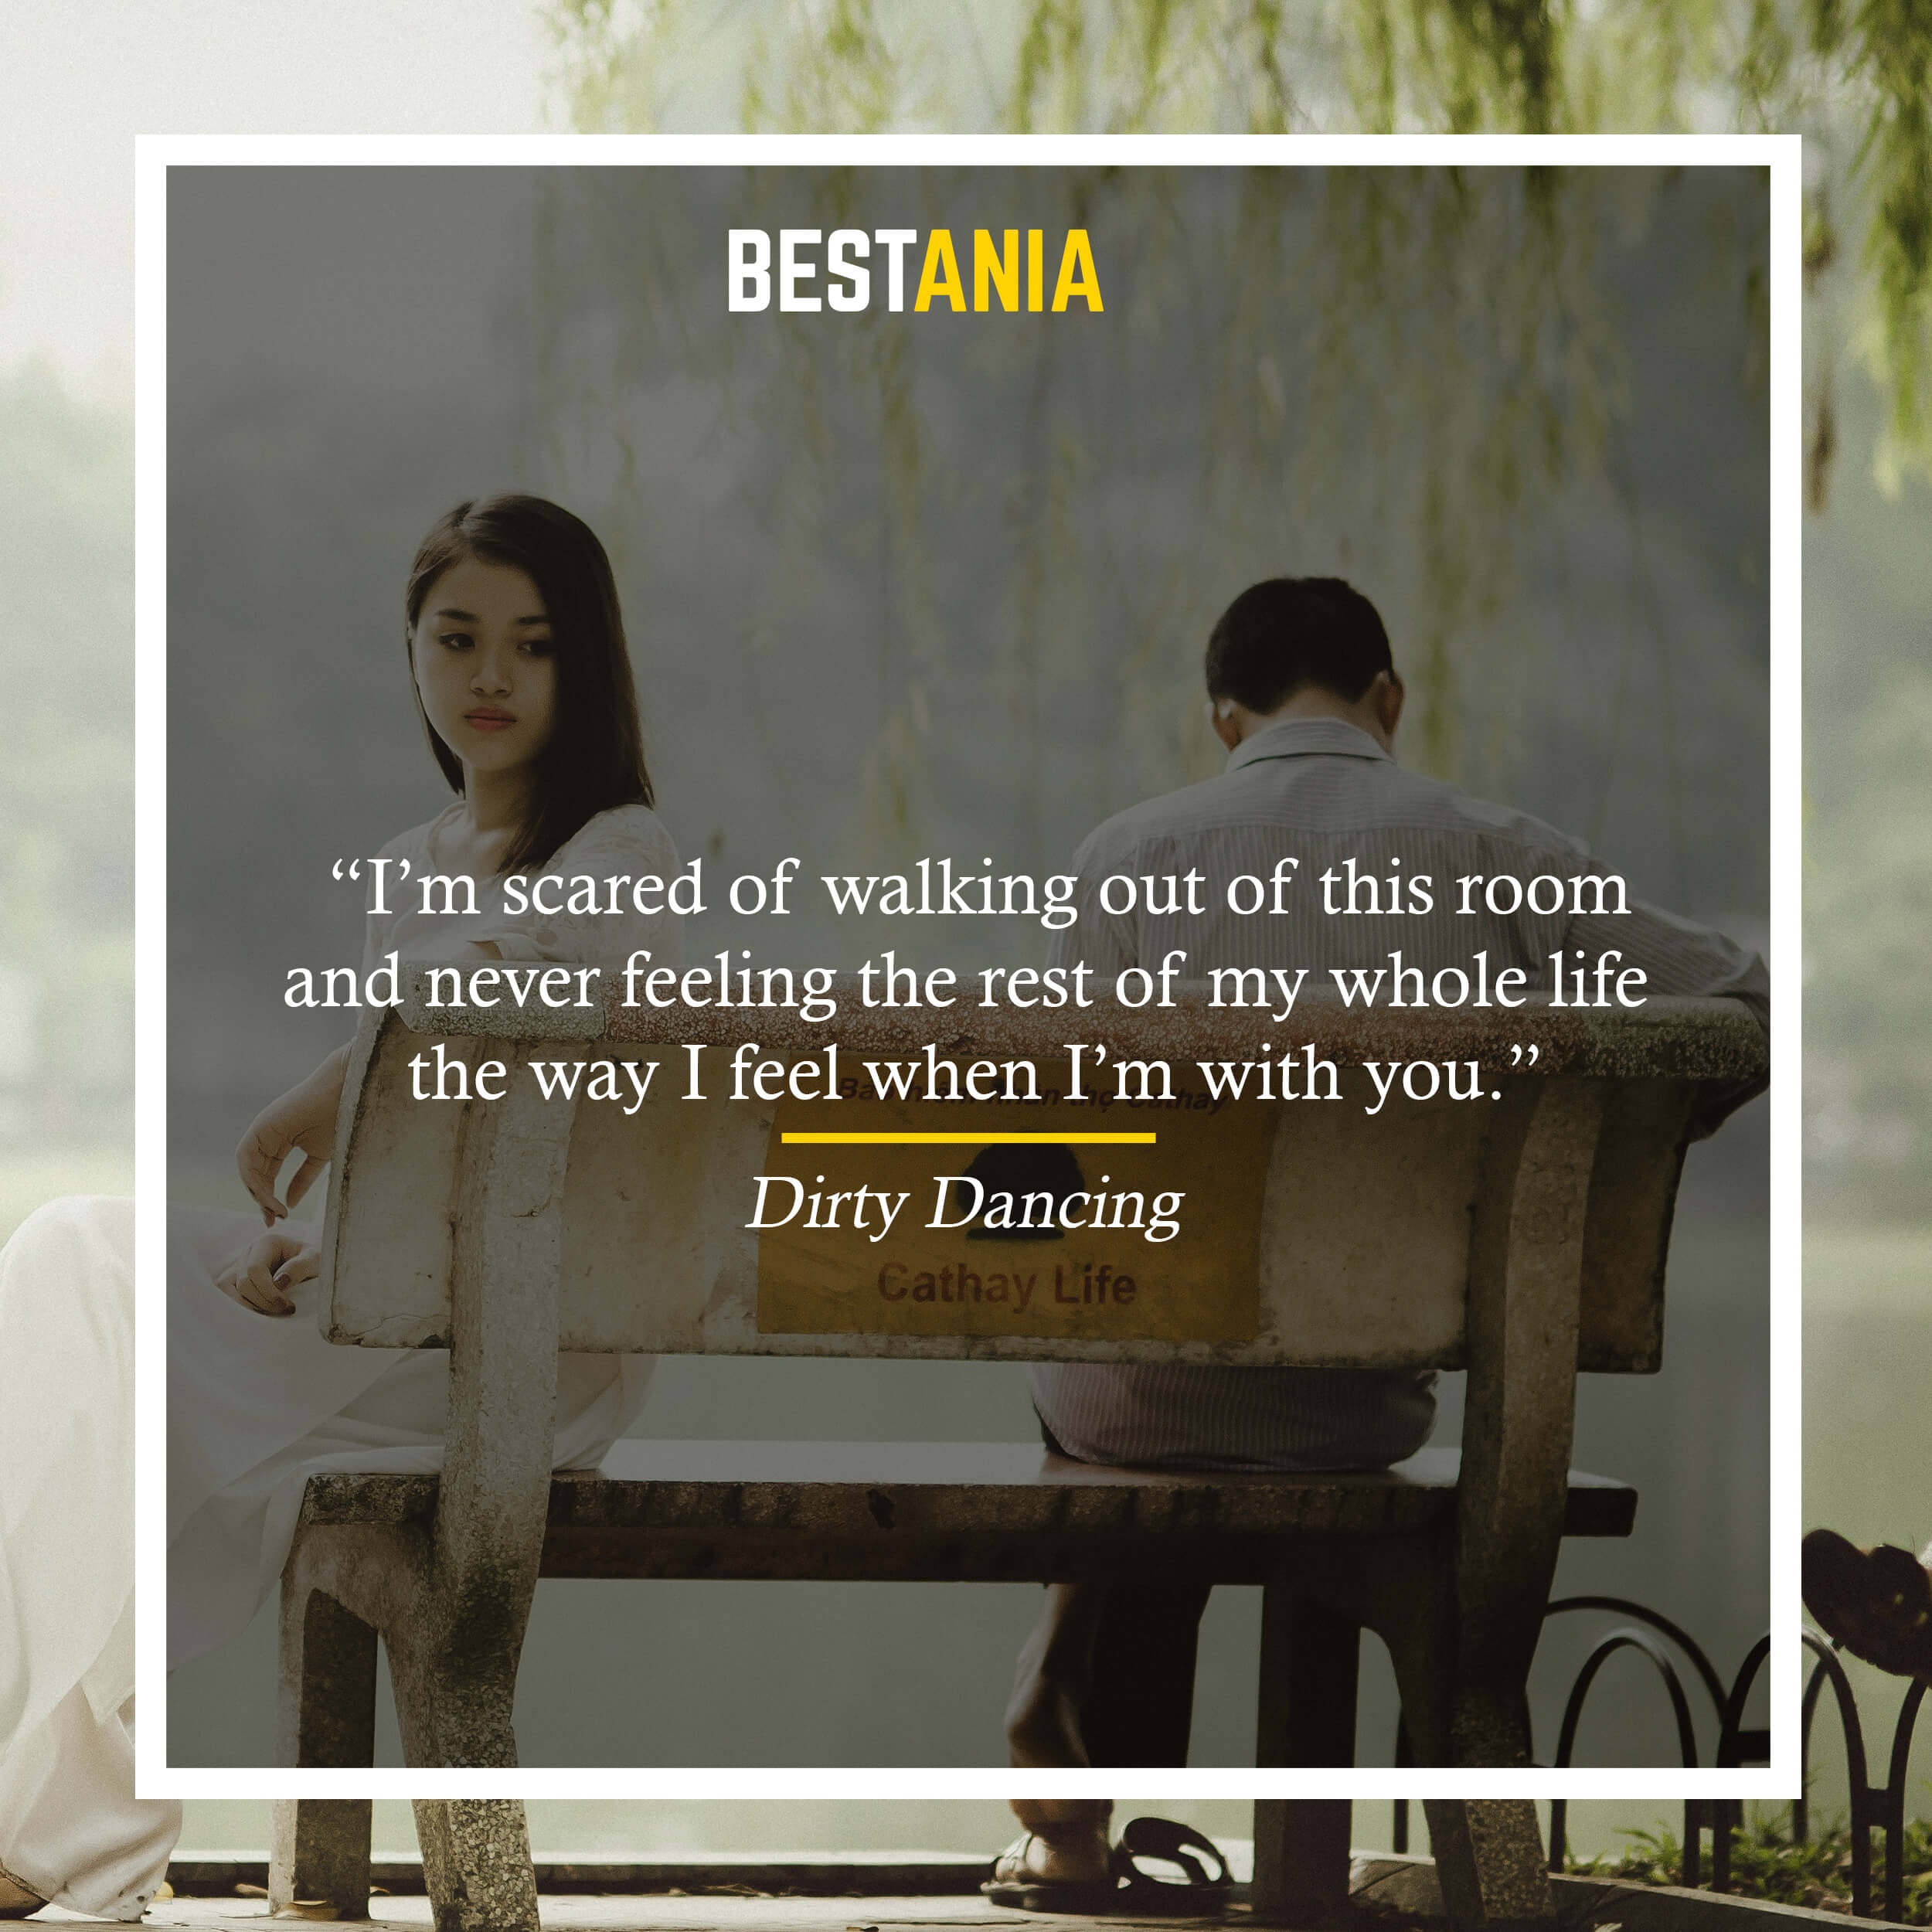 """I'm scared of walking out of this room and never feeling the rest of my whole life the way I feel when I'm with you.""– Dirty Dancing"